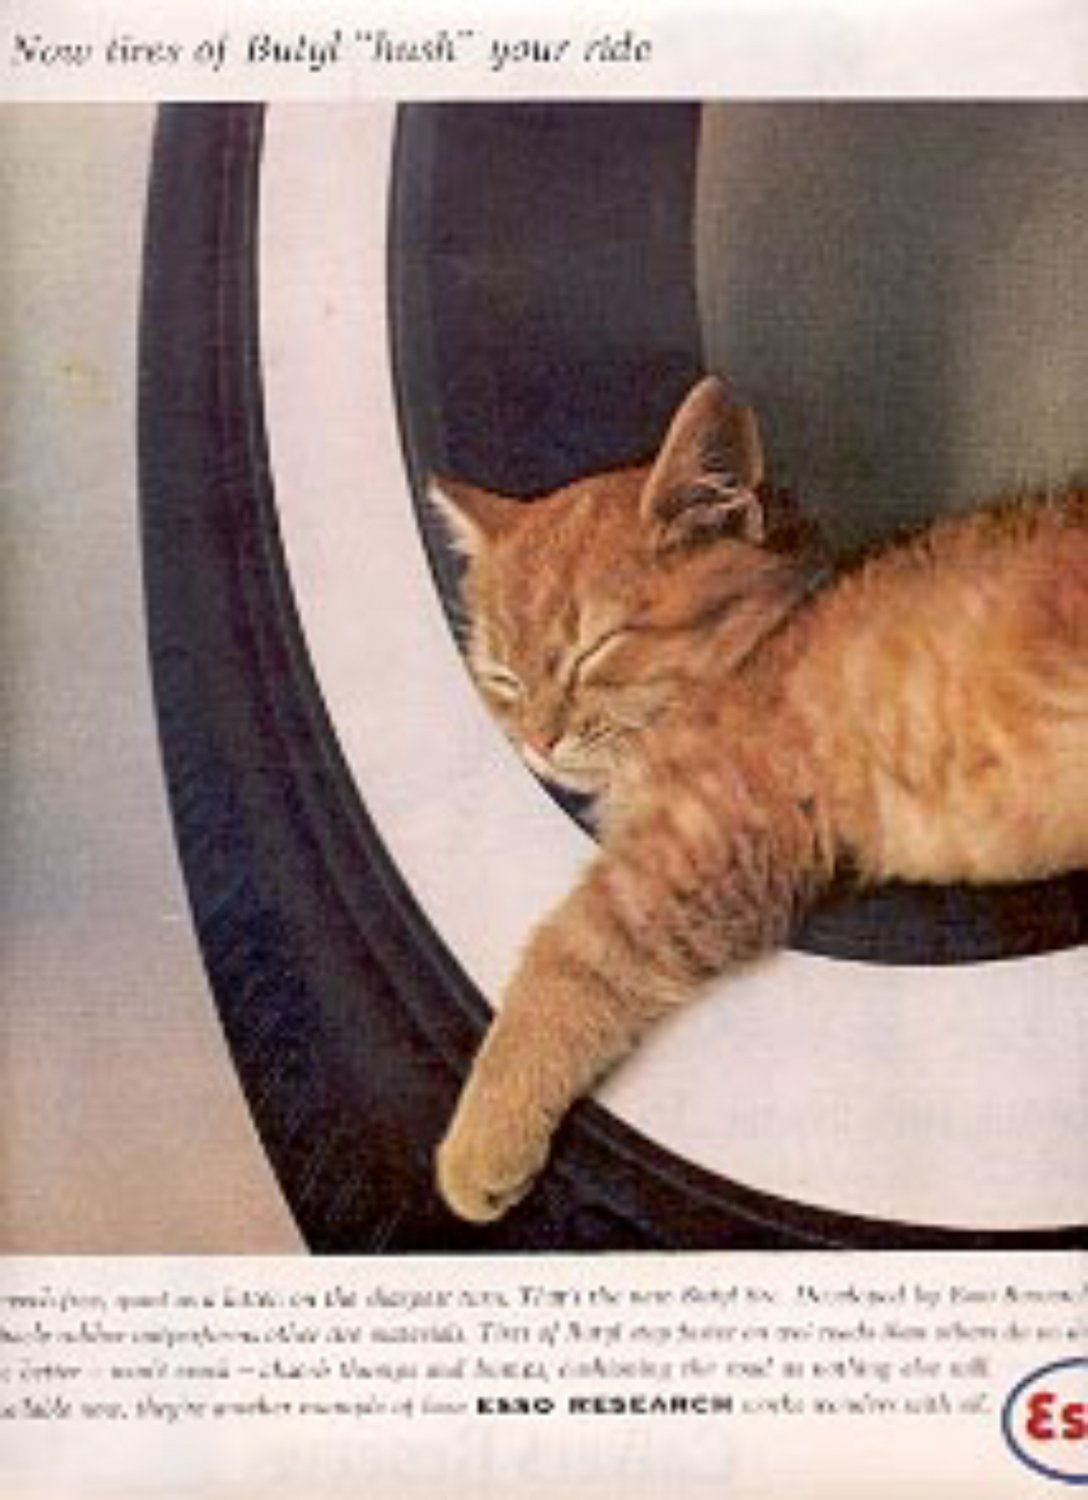 1959 Esso Research- Butyl Tires ad (# 2377)